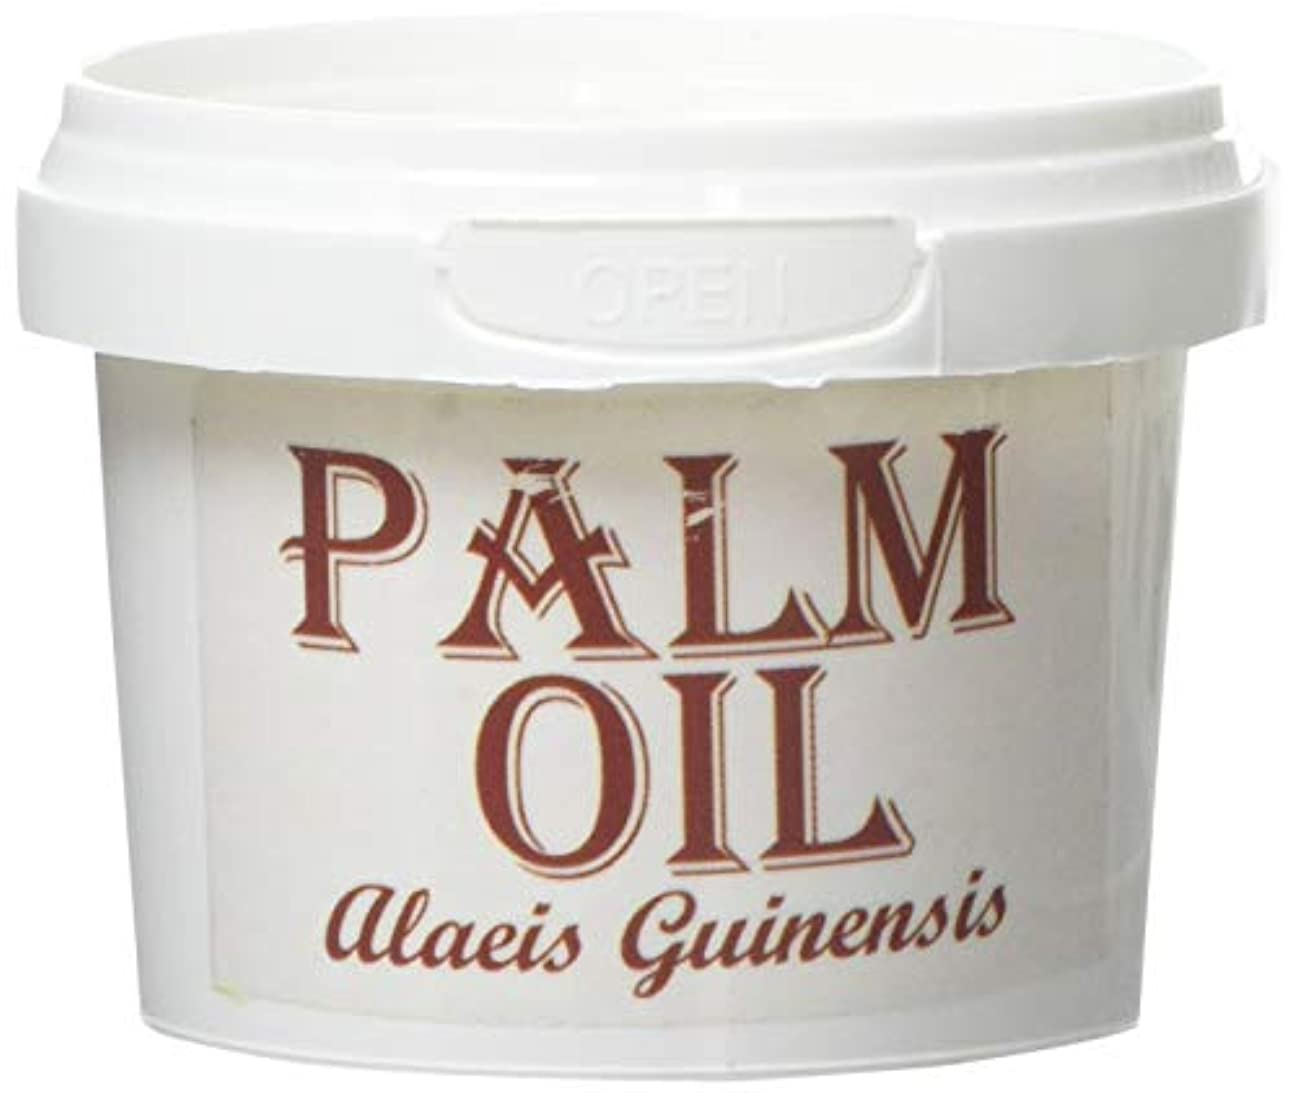 Mystic Moments   Palm Carrier Oil - 100g - 100% Pure - Purchased from RSPO certified source